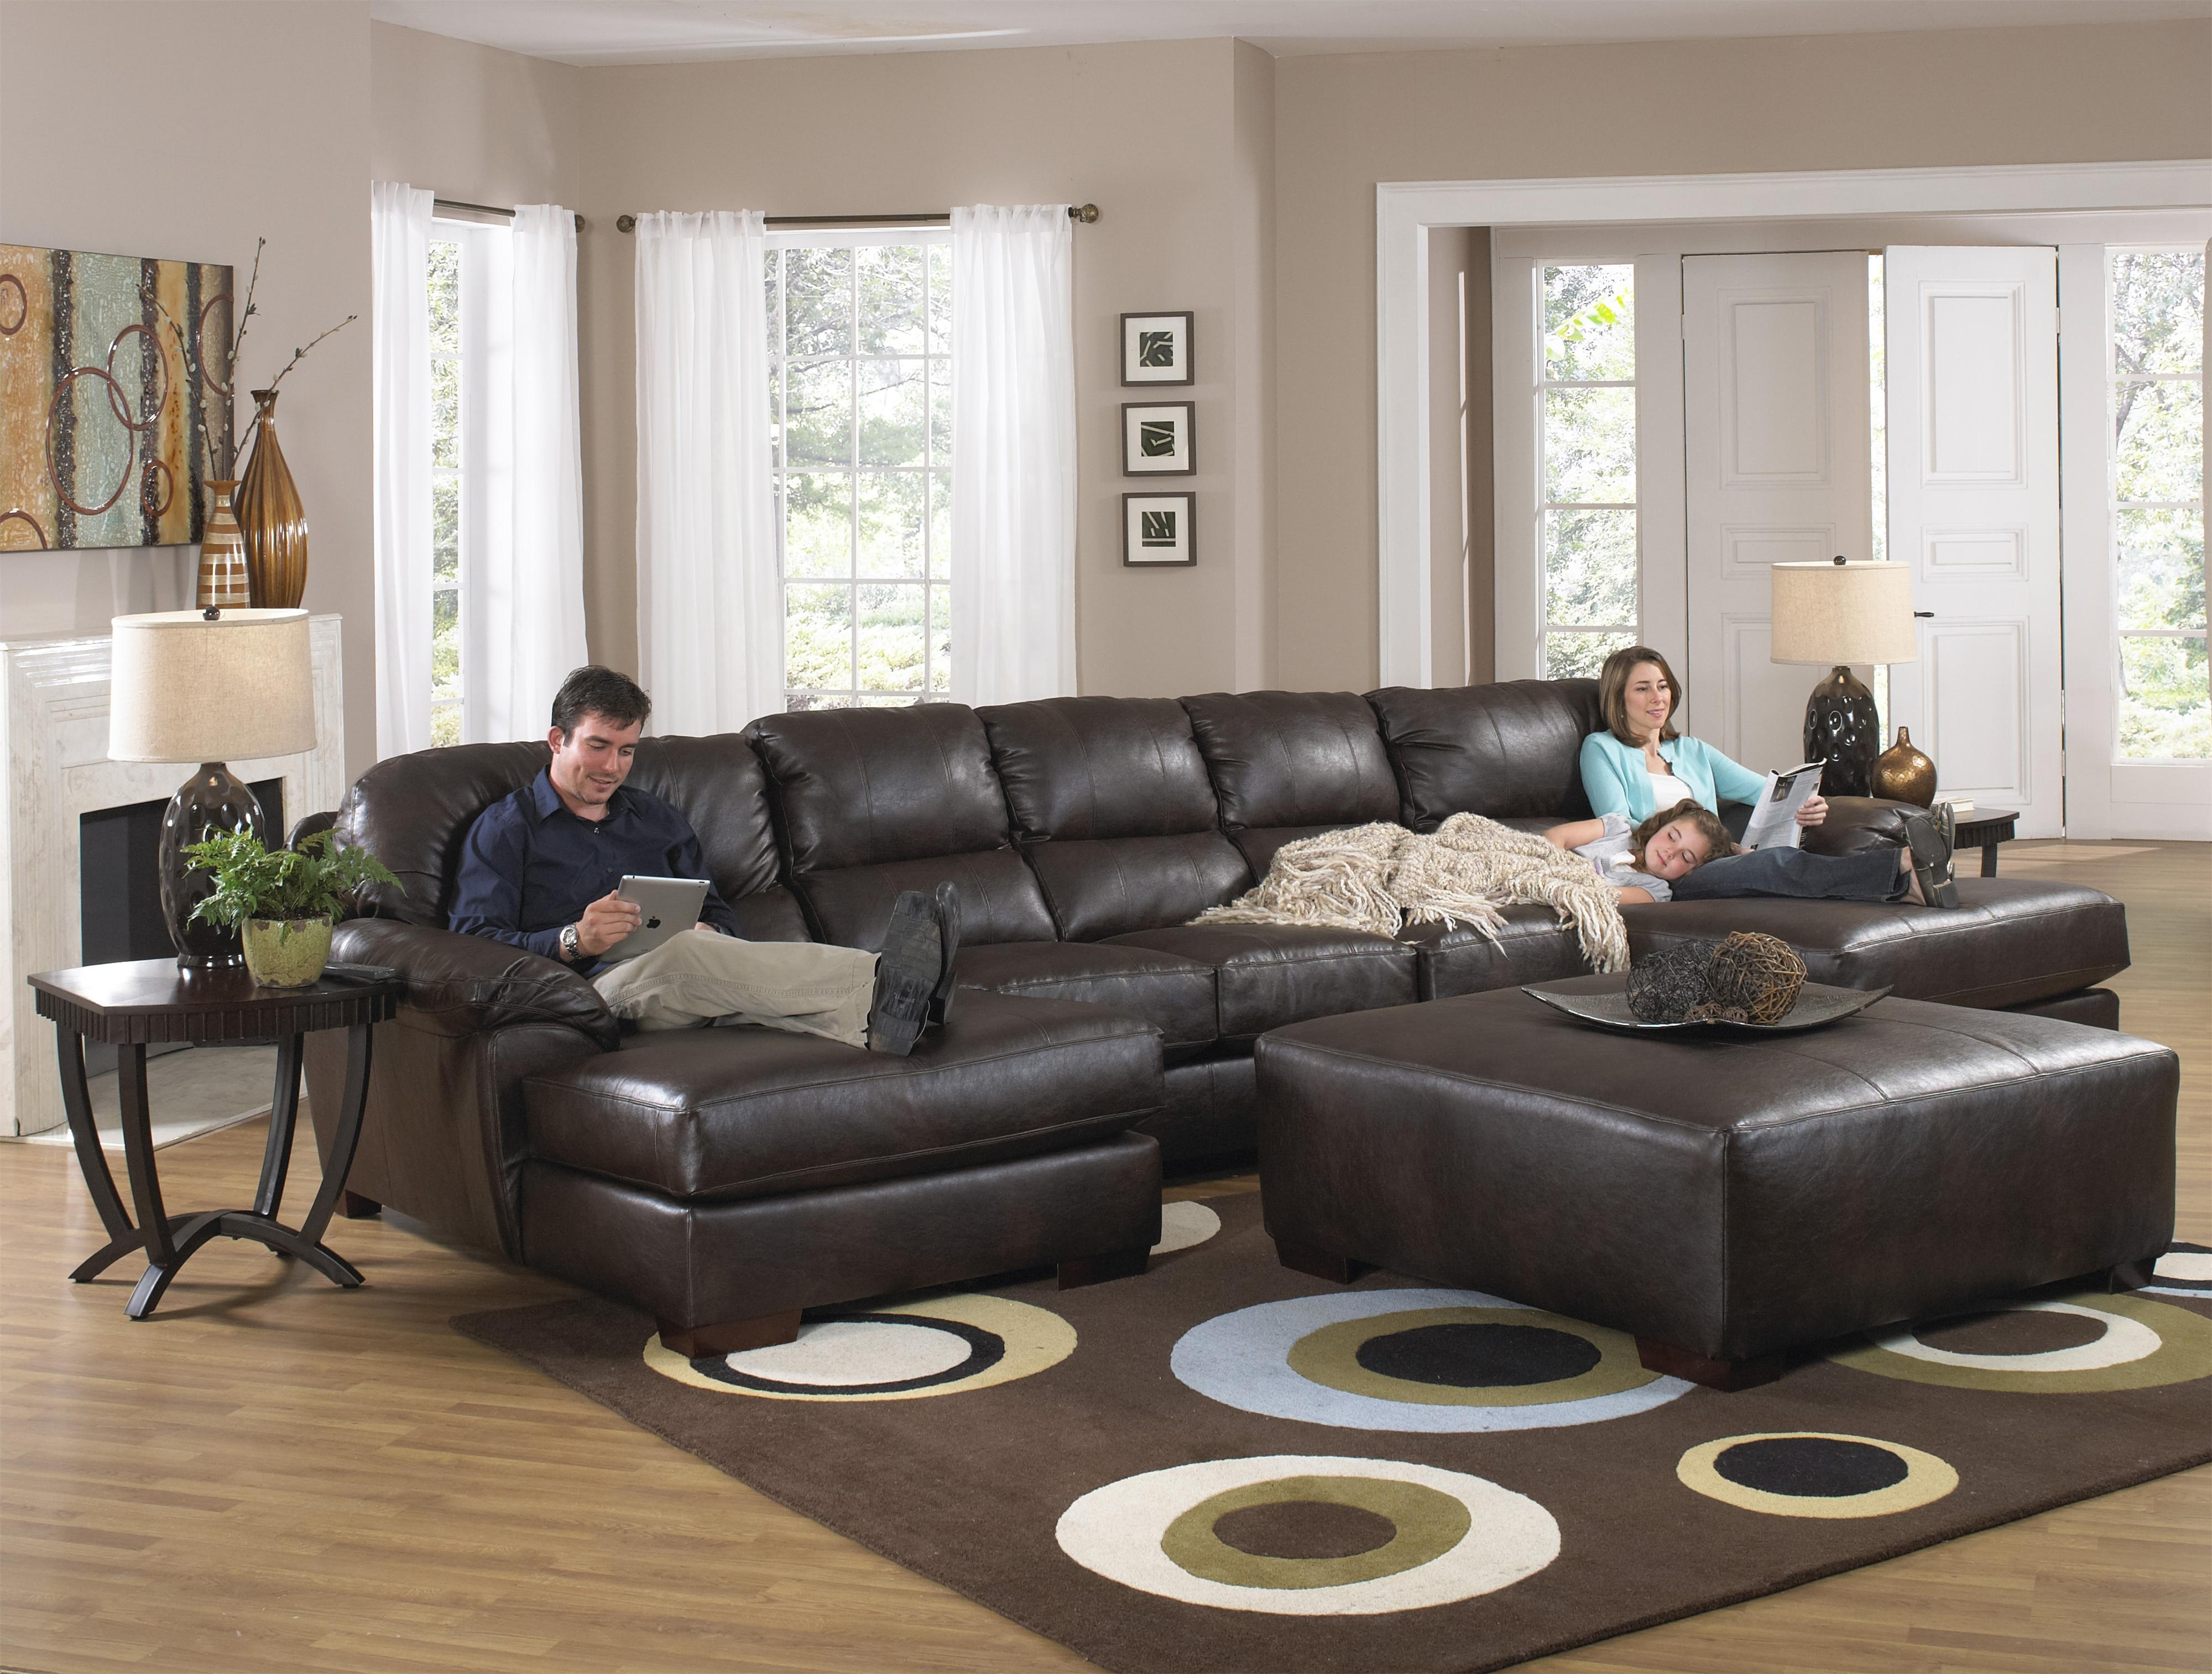 Sectional Sofas With Chaise Lounge And Ottoman In Most Recent Sofa : Beautiful Large Sectional Sofa With Chaise L Shaped Cream (View 11 of 15)